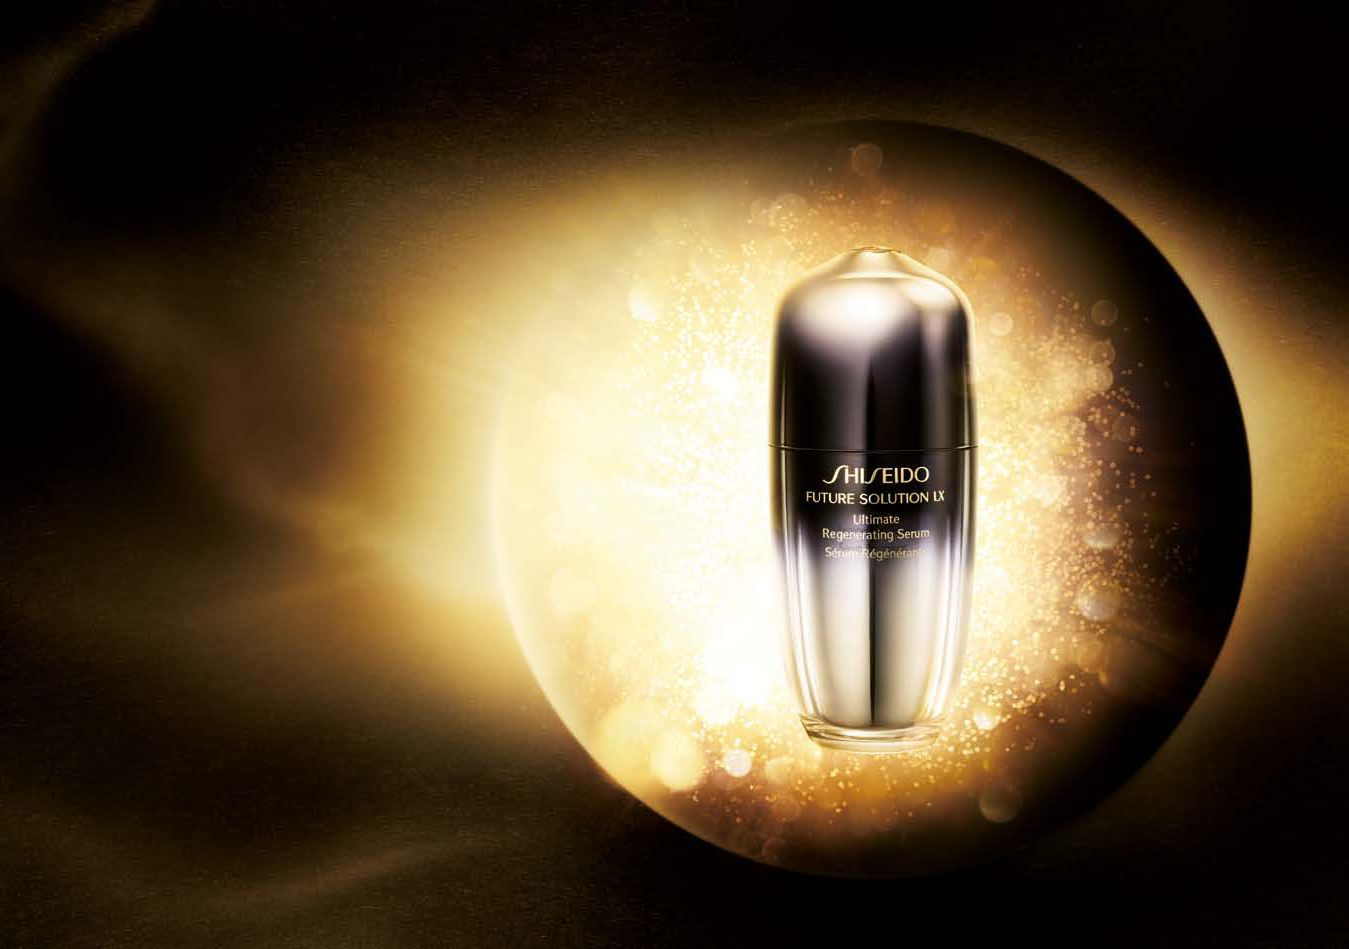 SHISEIDO future solution,product image,beauty